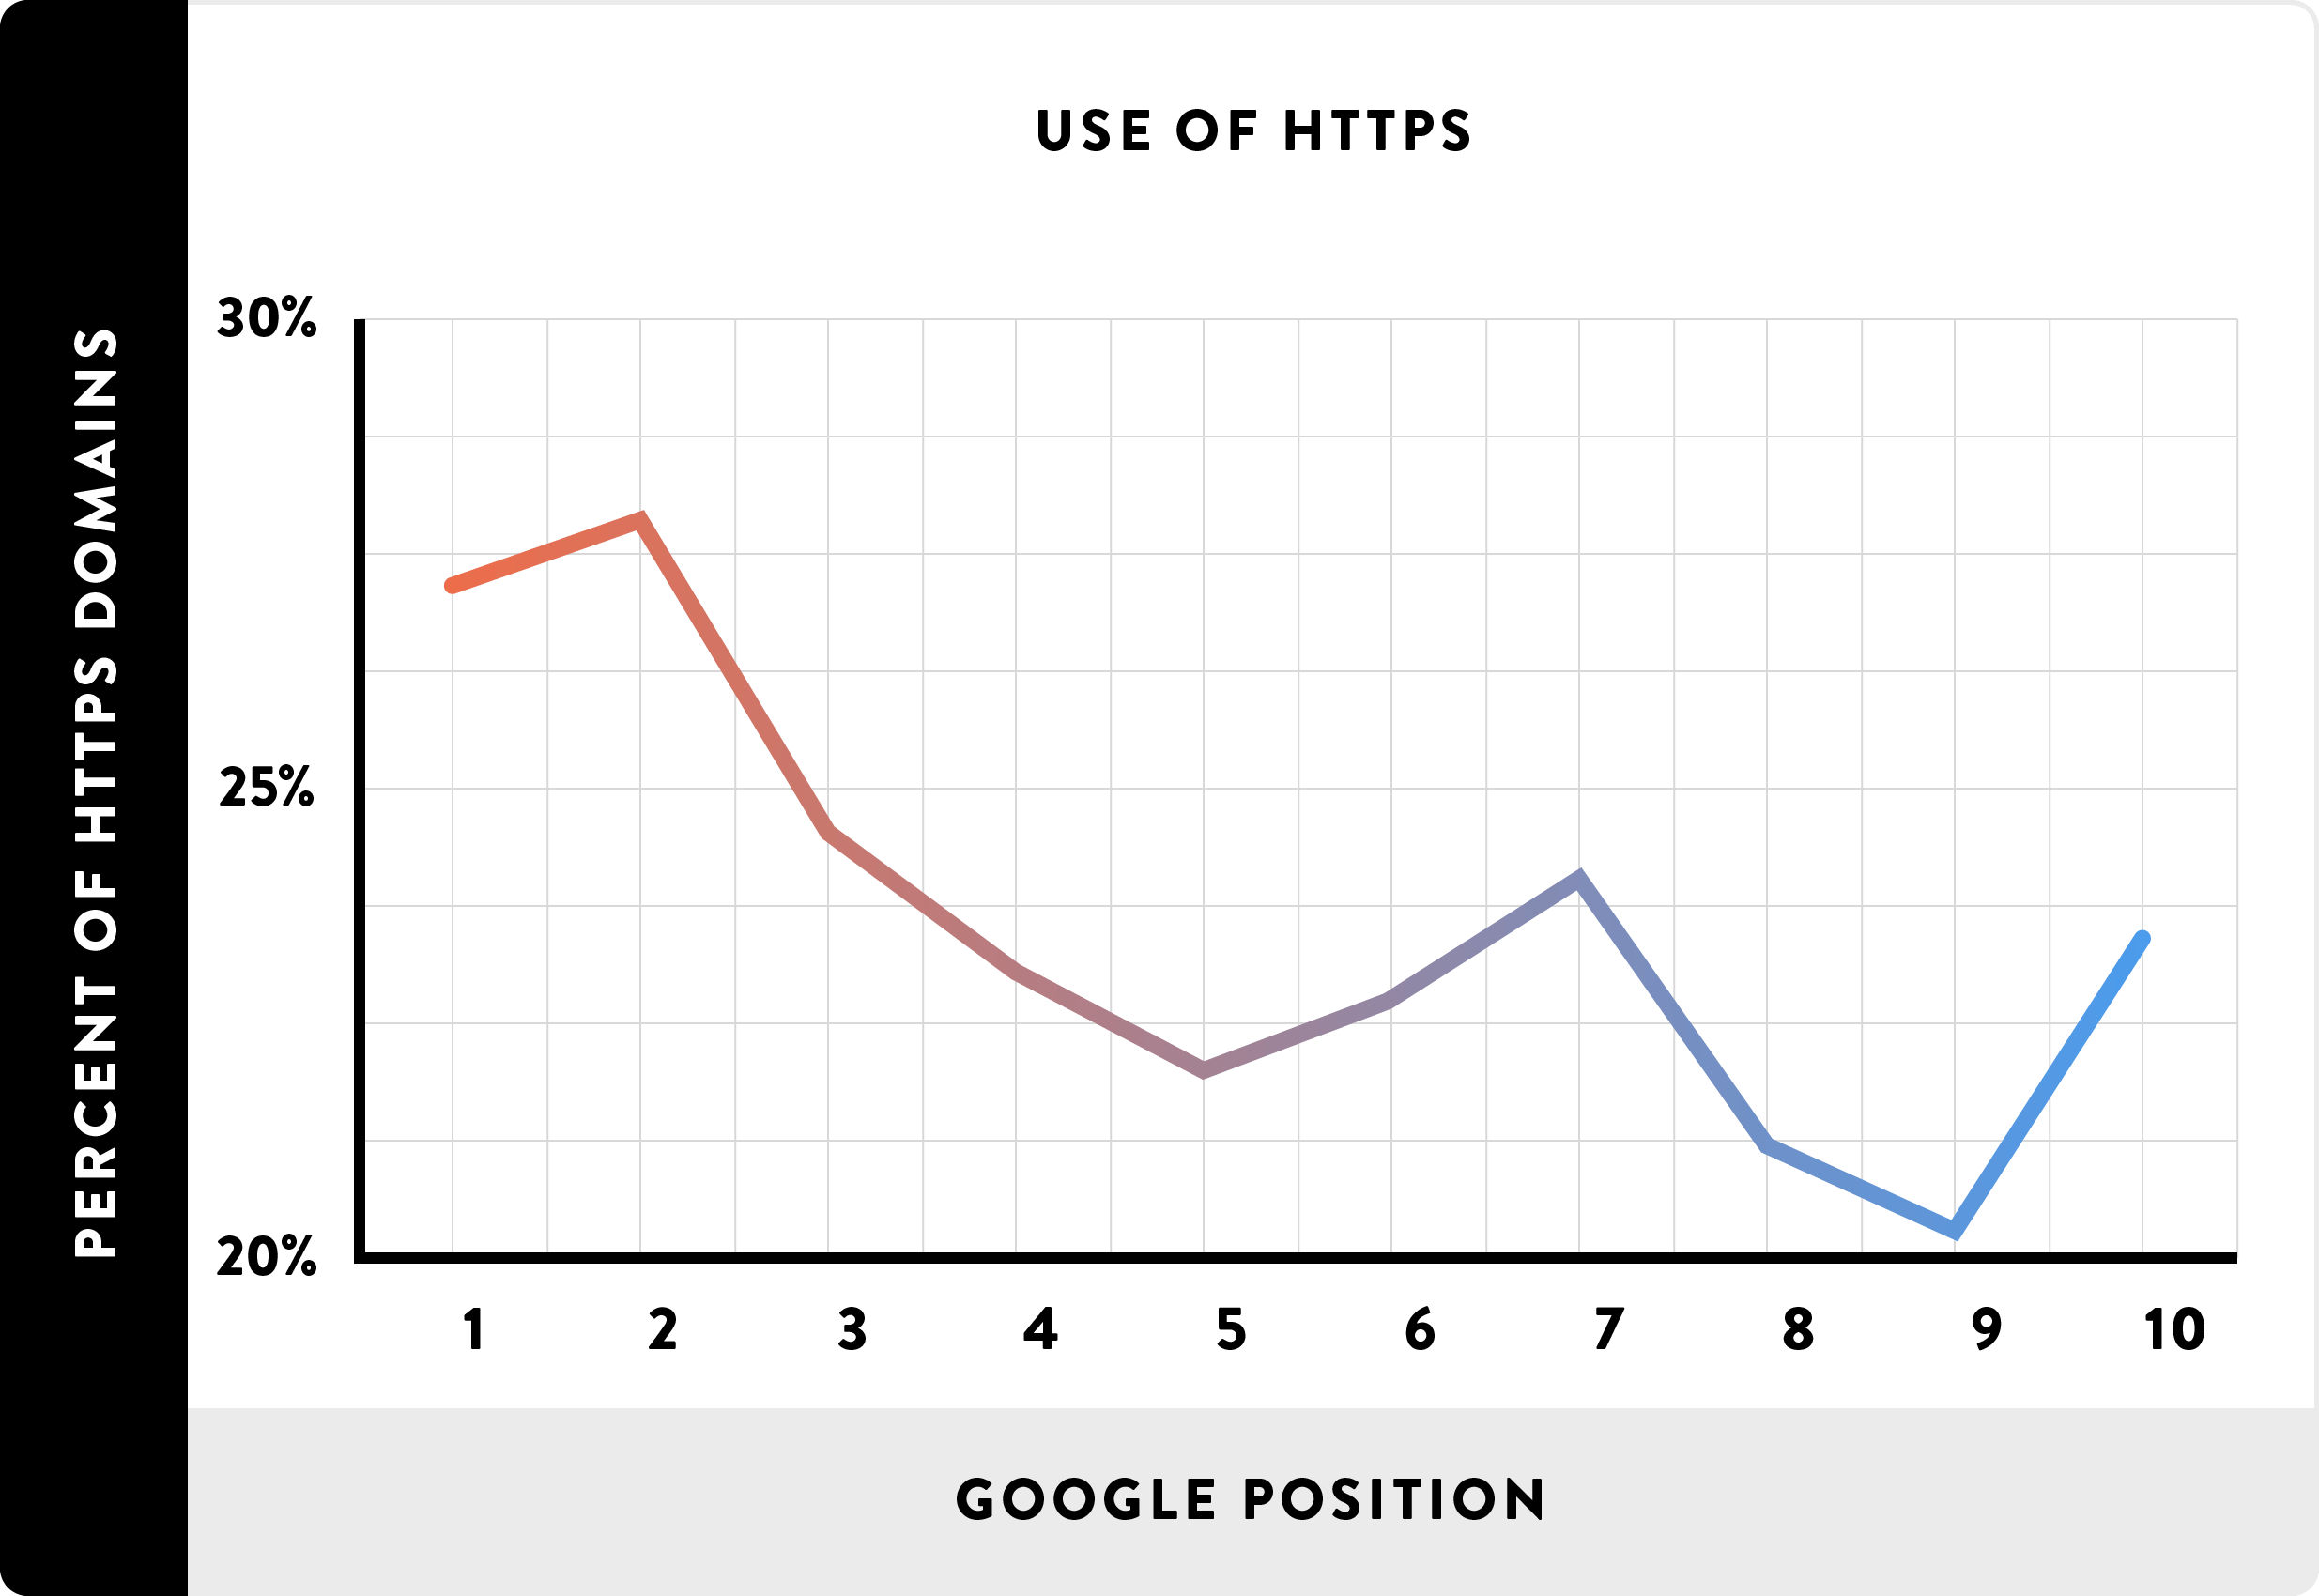 HTTPs increases rankings